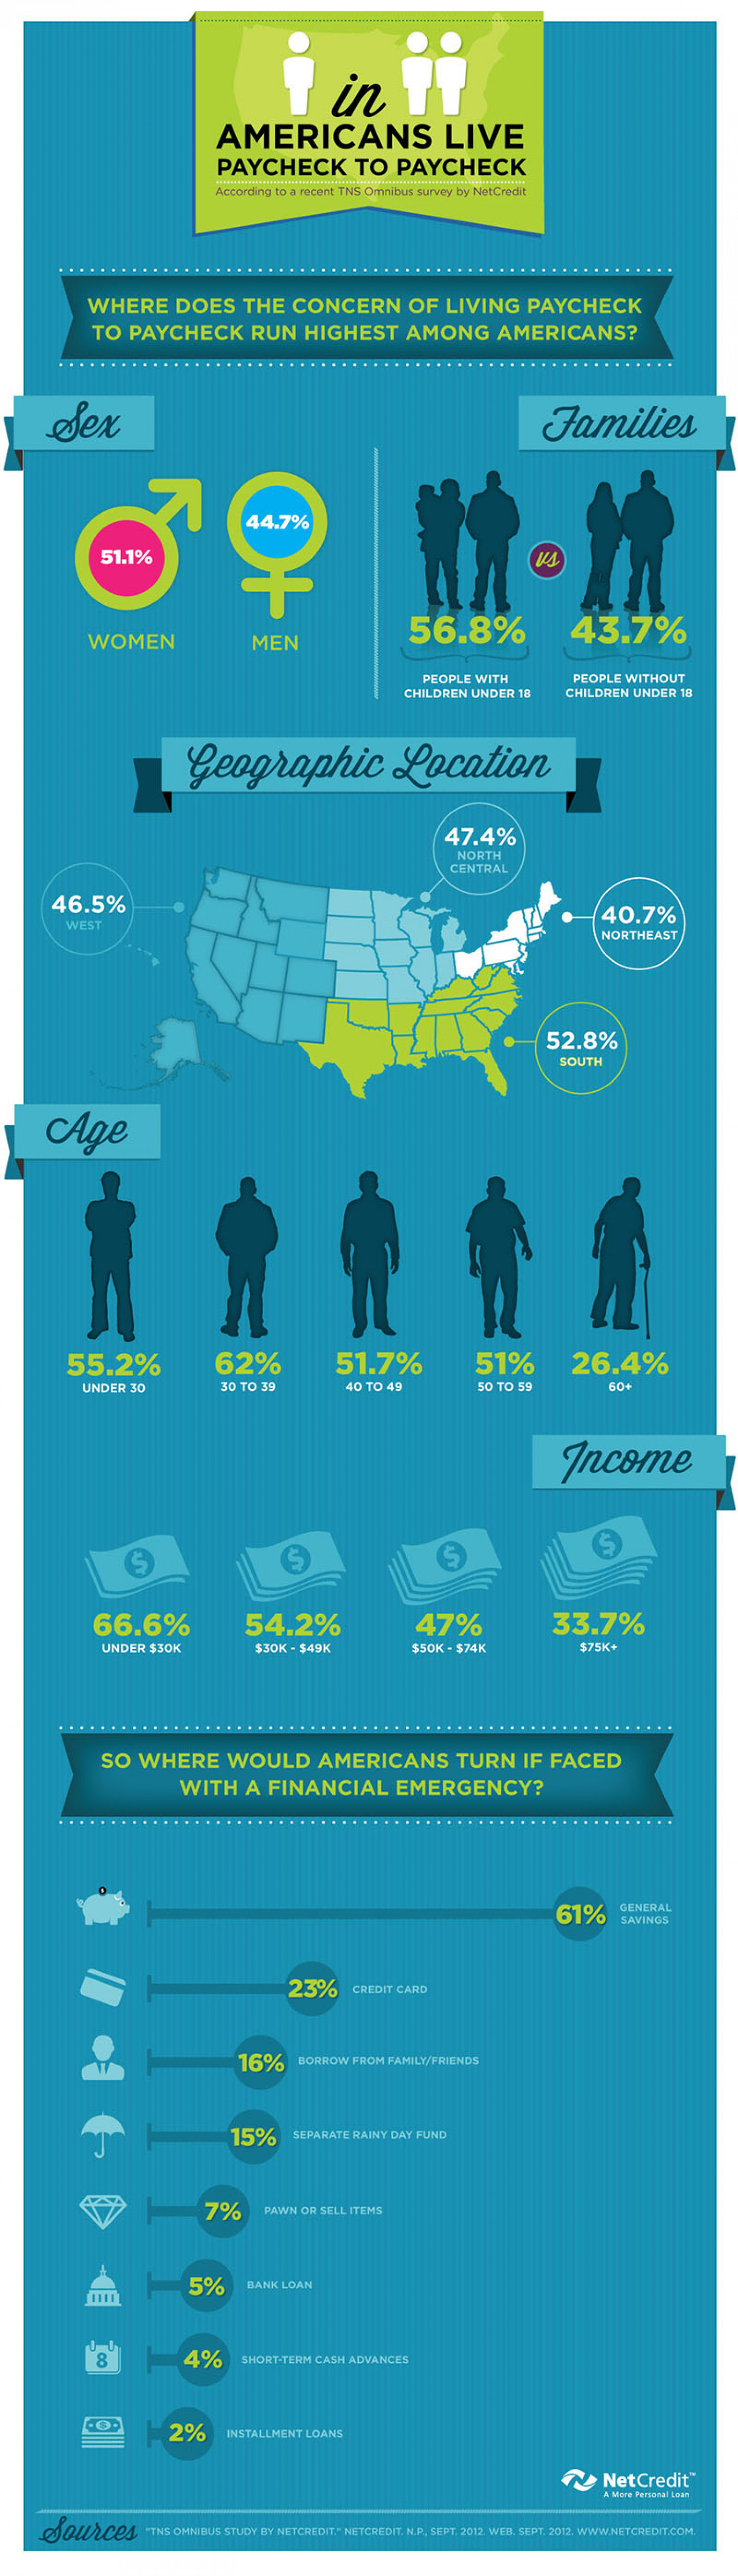 Where Concern of Living Paycheck to Paycheck Run Highest Among Americans Infographic